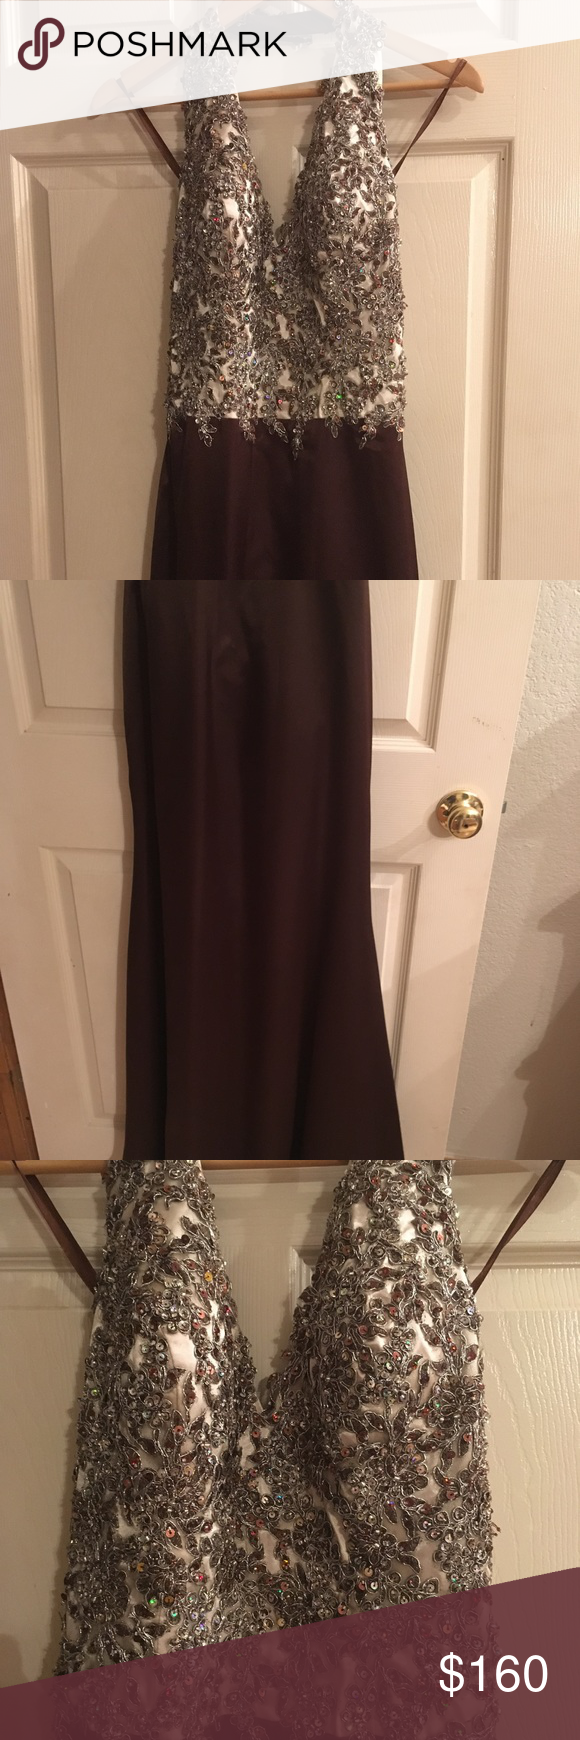 My fashion evening gown. size is 8, runs small Beaded halter evening ...